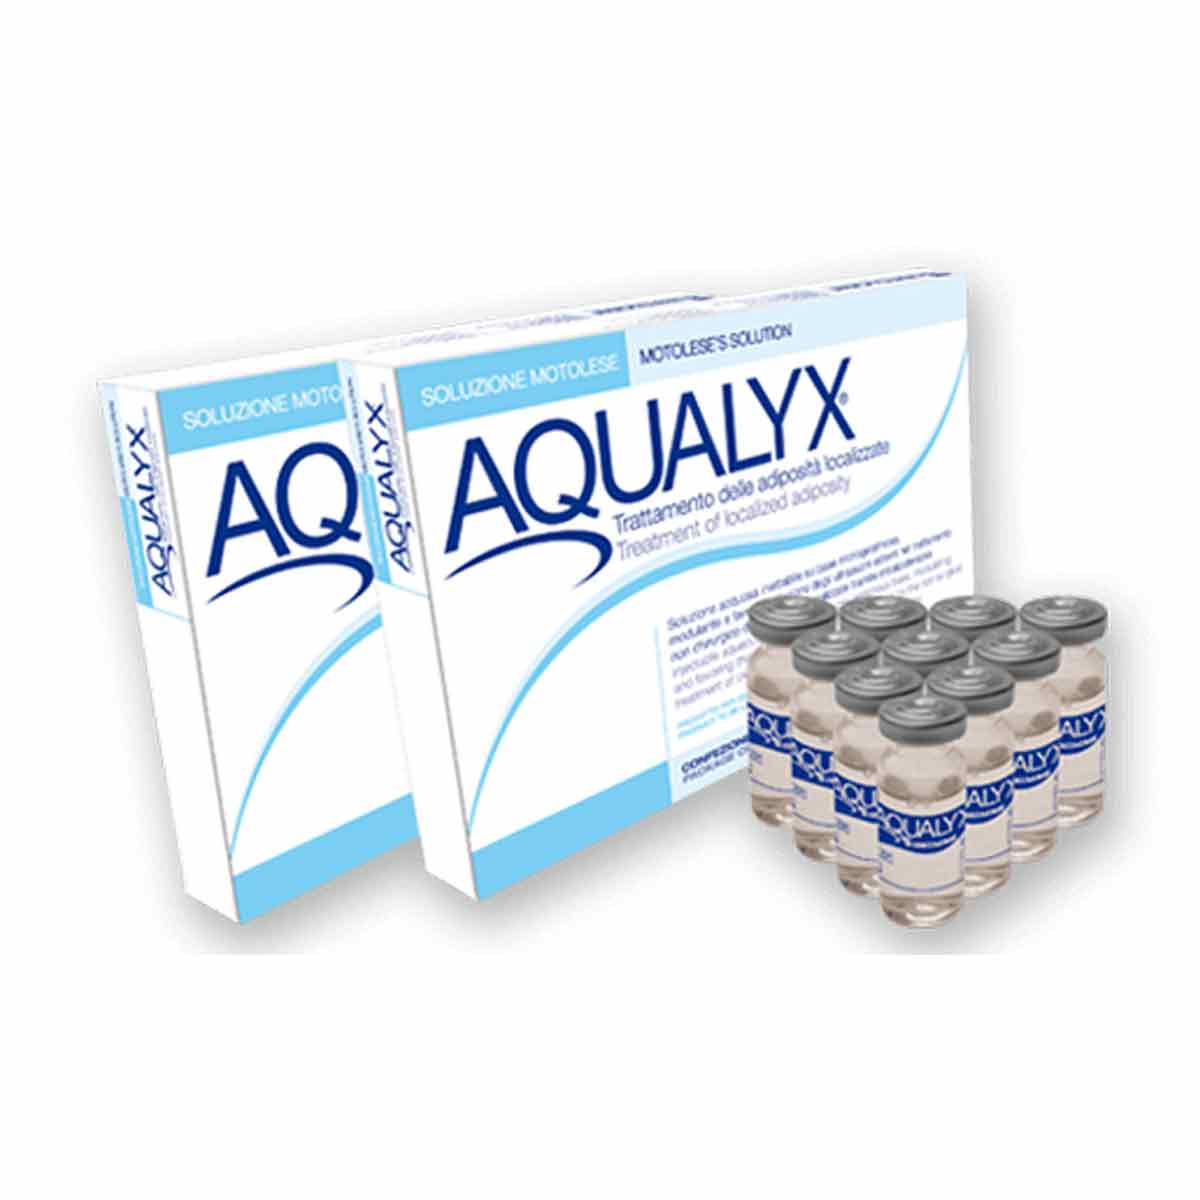 Aqualyx Injections: The Controversial Fat Fighting Jab